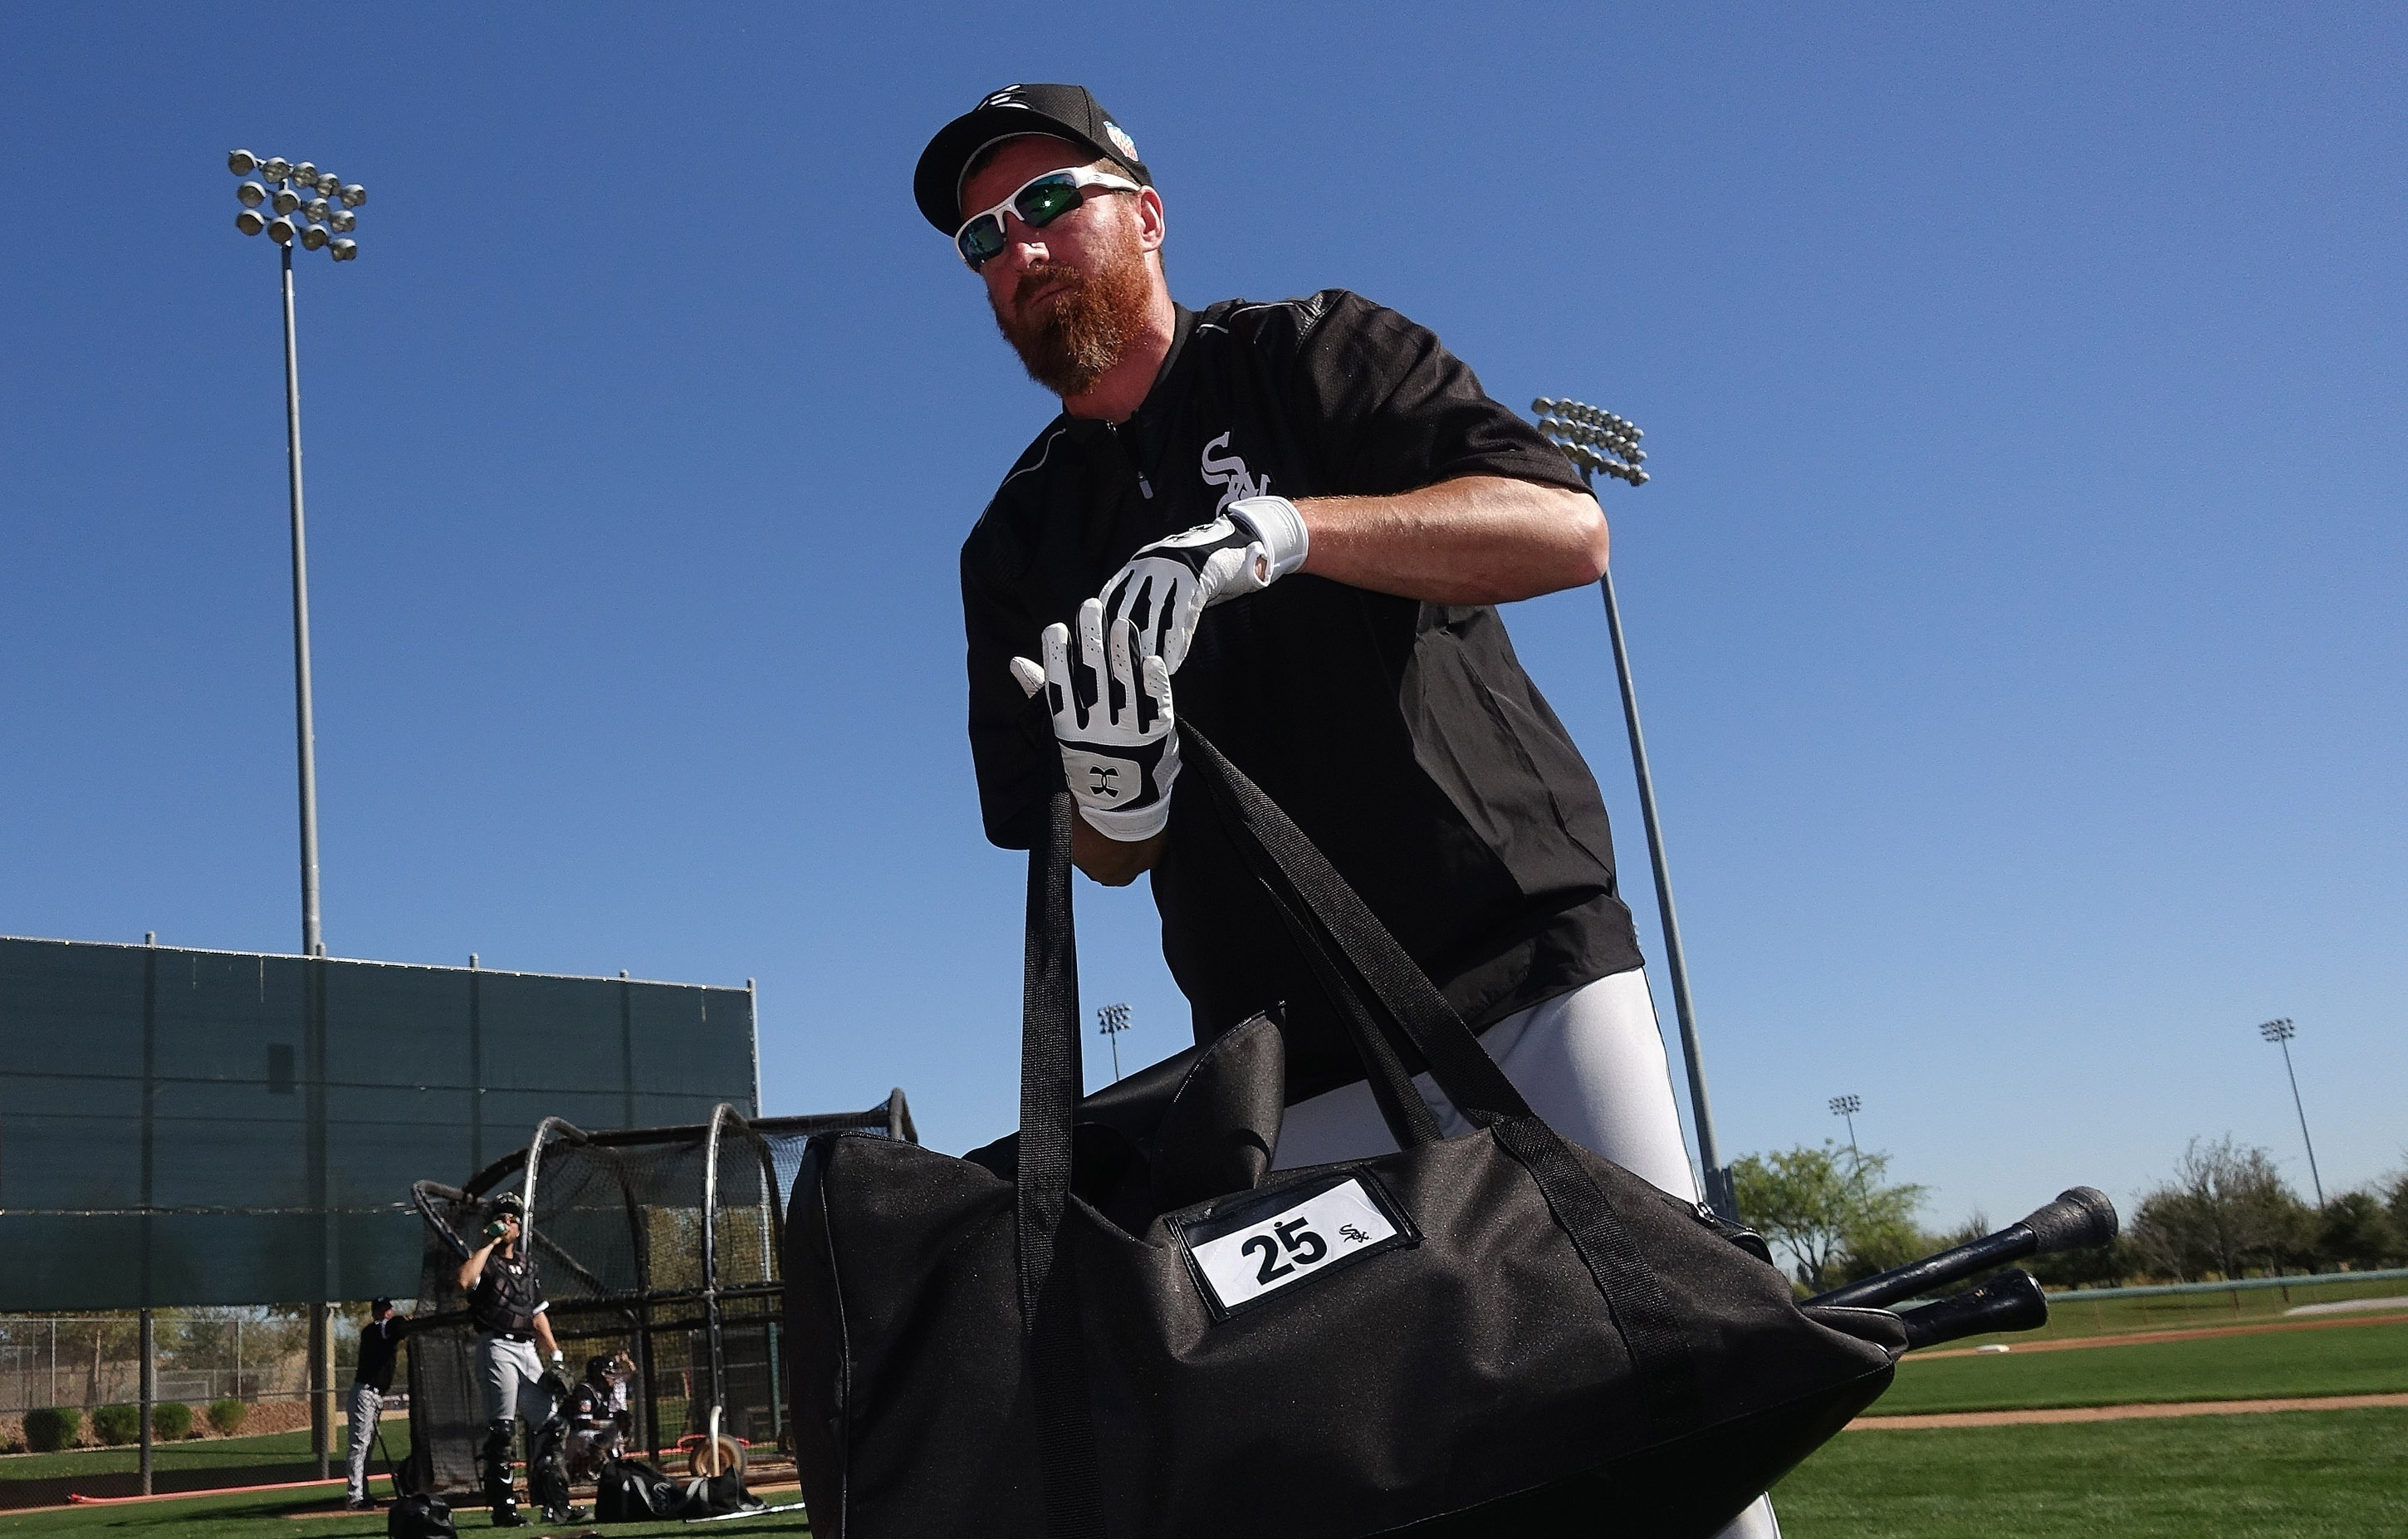 FILE - In this Feb. 26, 2016, file photo, Chicago White Sox's Adam LaRoche picks up his gear after taking live batting practice during a spring training baseball workout in Glendale, Ariz. LaRoche surprised the White Sox by retiring Tuesday, March 15, 201